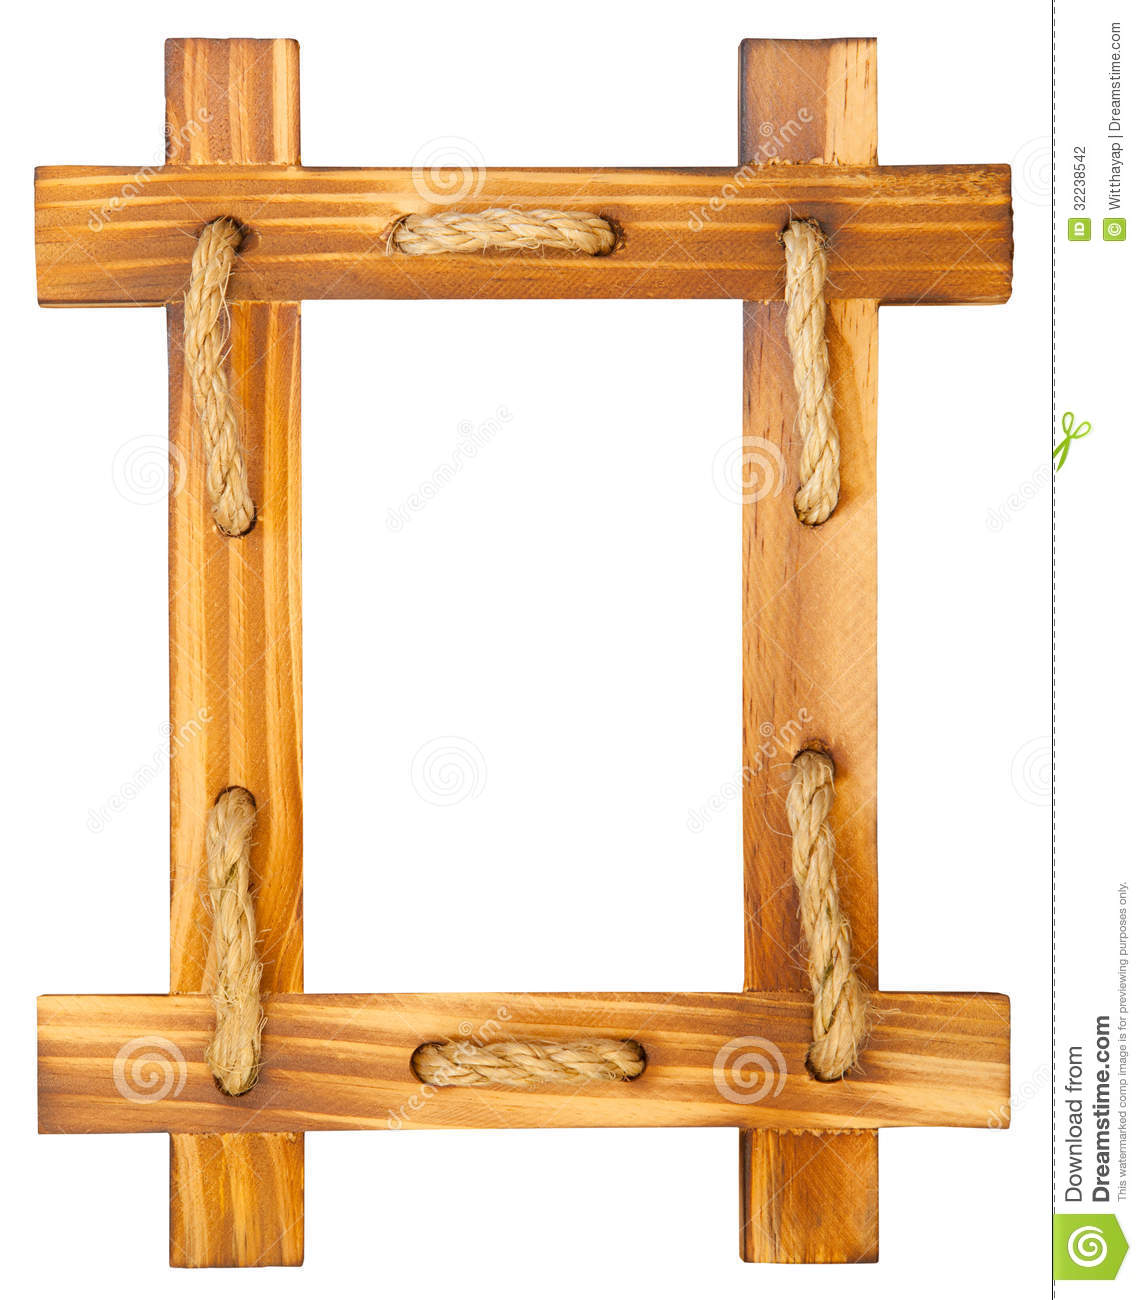 old wooden frame with rope stock photo image of hanging 32238542. Black Bedroom Furniture Sets. Home Design Ideas